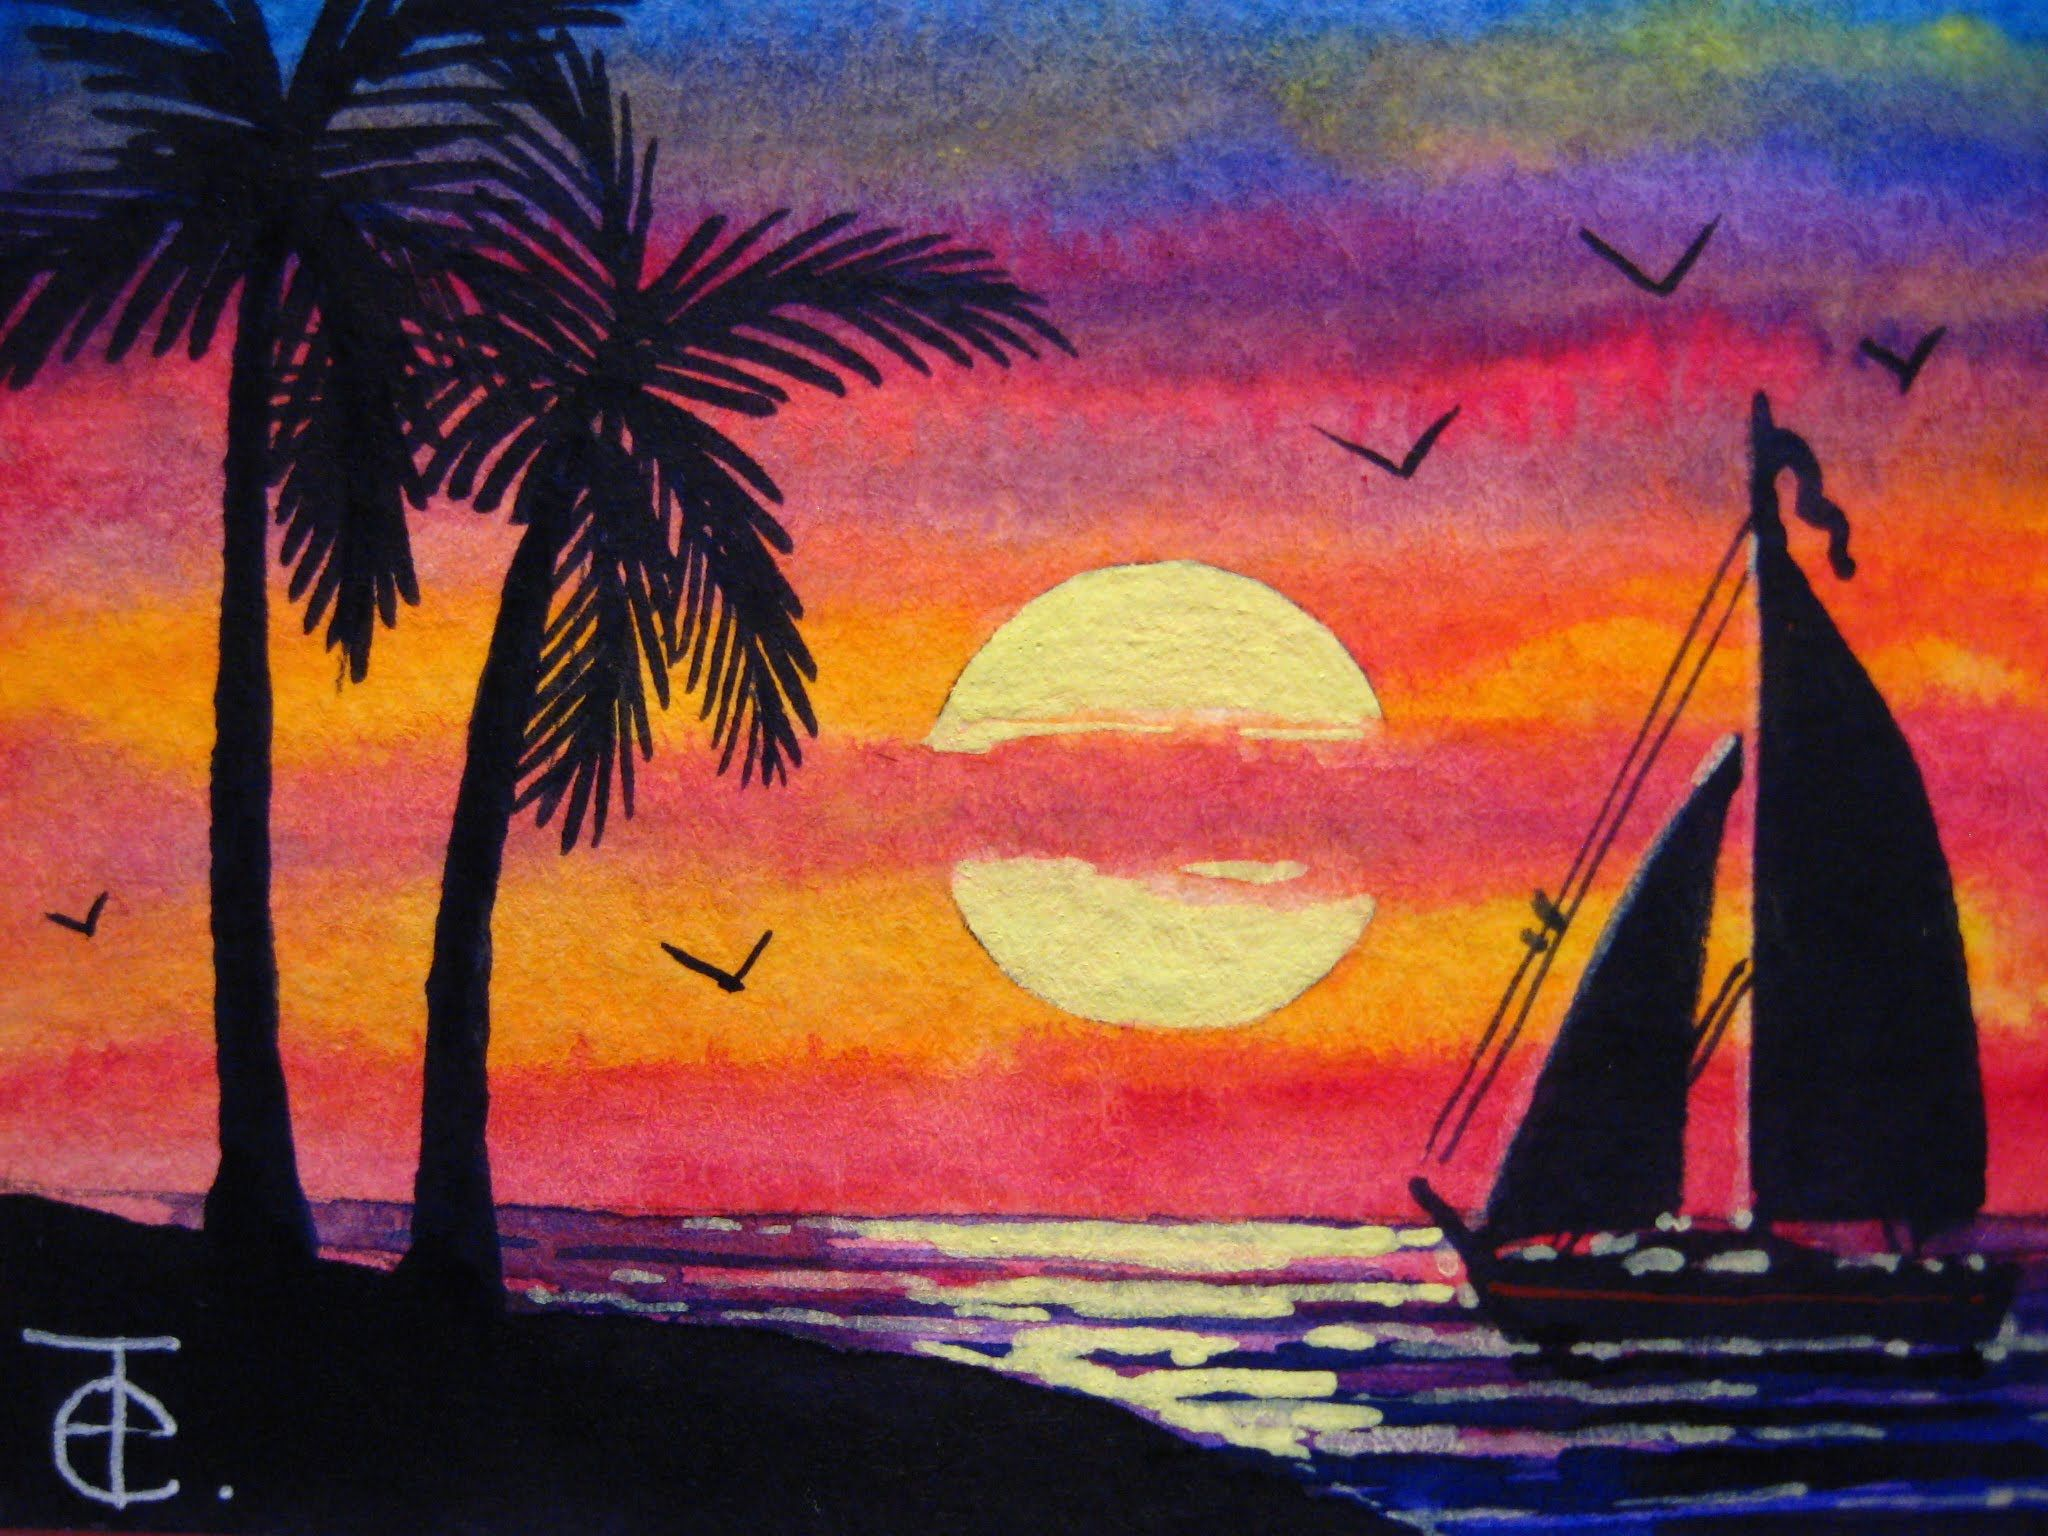 How To Draw Scenery Of Sunset With Oil Pastel Step By Step Easy